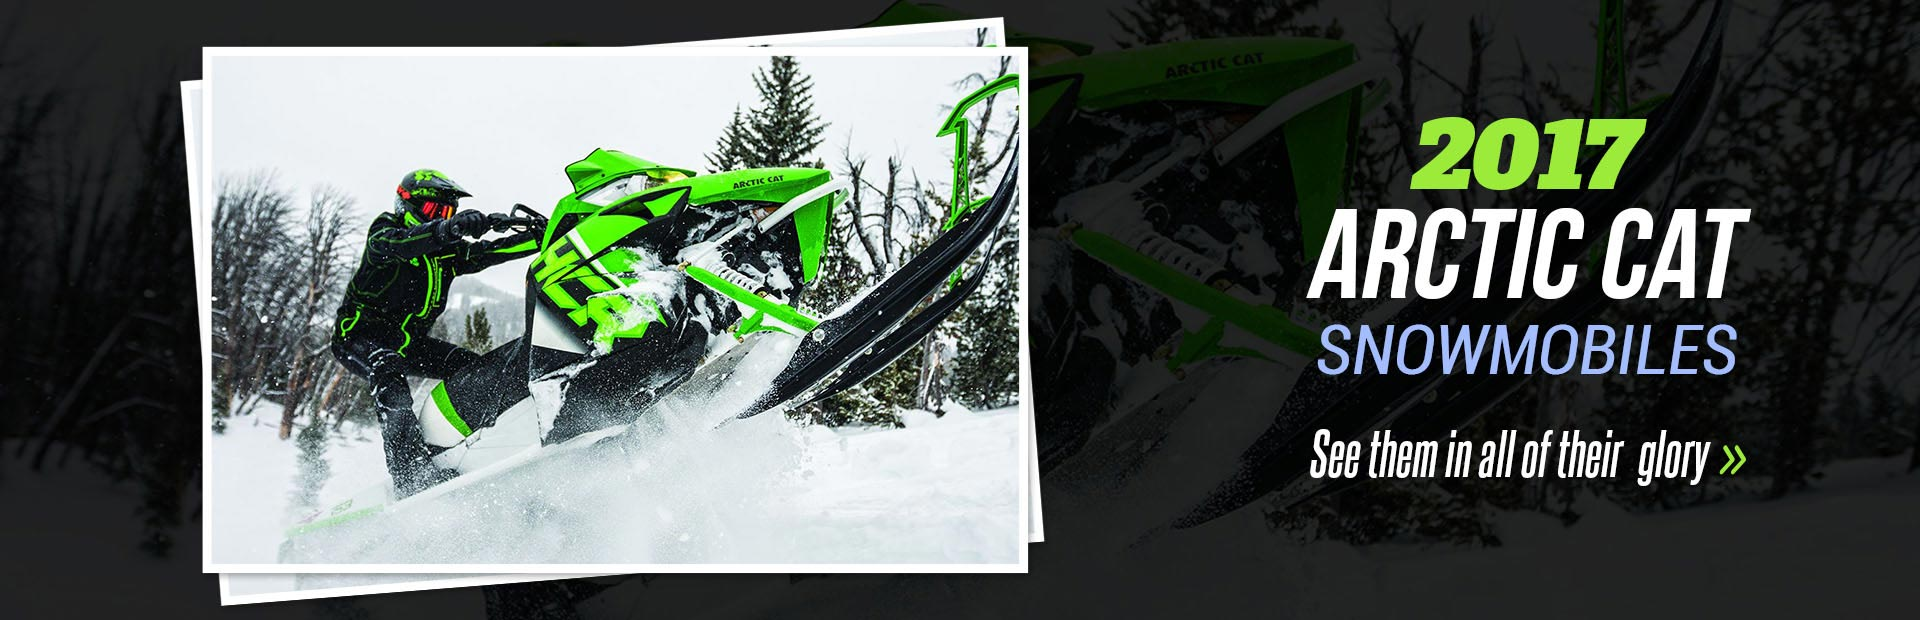 2017 Arctic Cat Snowmobiles: Click here to see them in all of their glory!